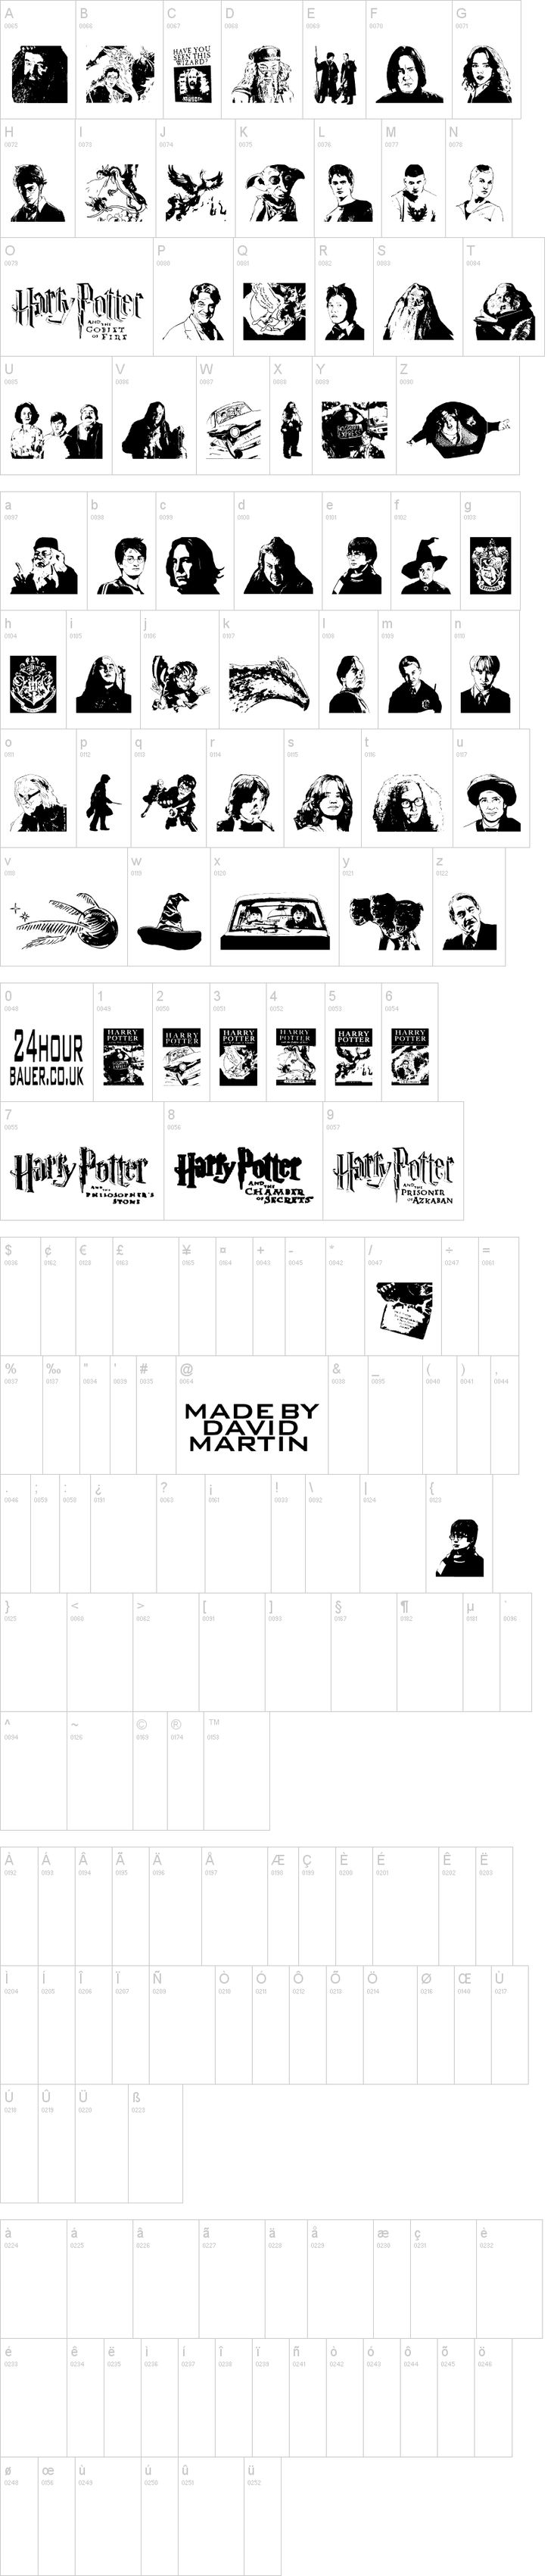 a Harry Potter dingbat font! PLUS this site also has other Harry Potter fonts! My essays just got a lot more exciting!